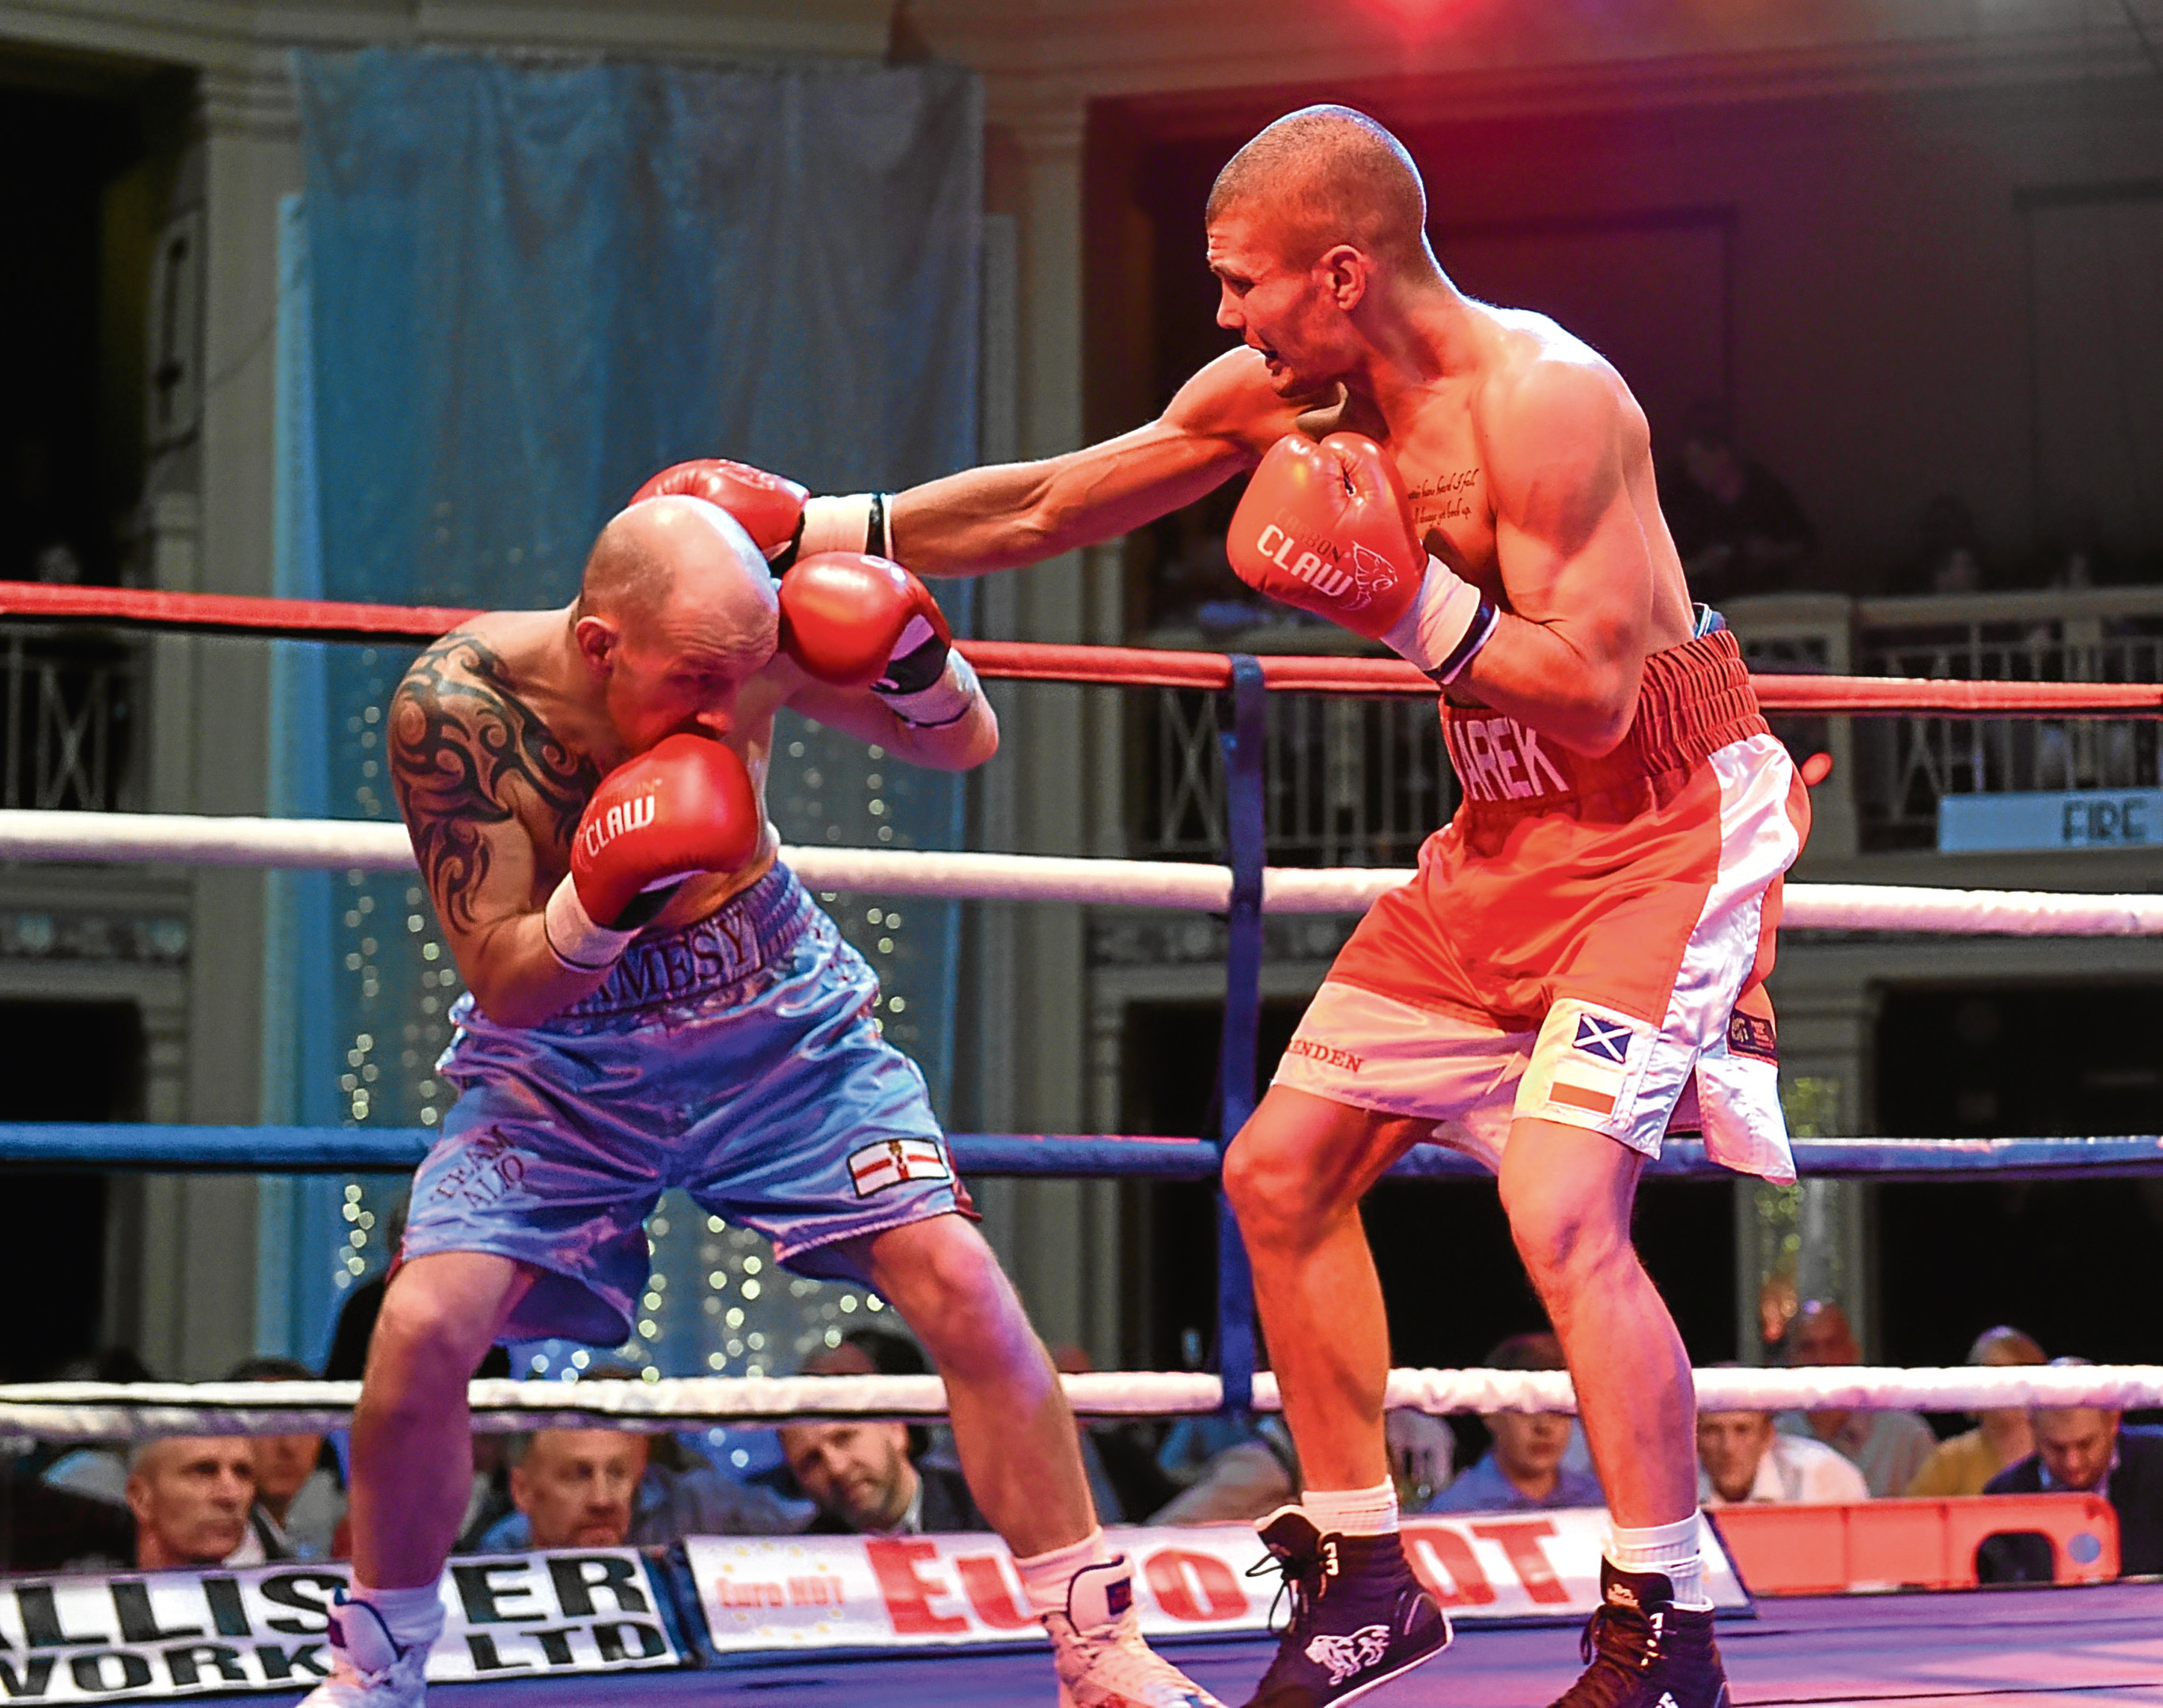 Championship Boxing at the Beach Ballroom.